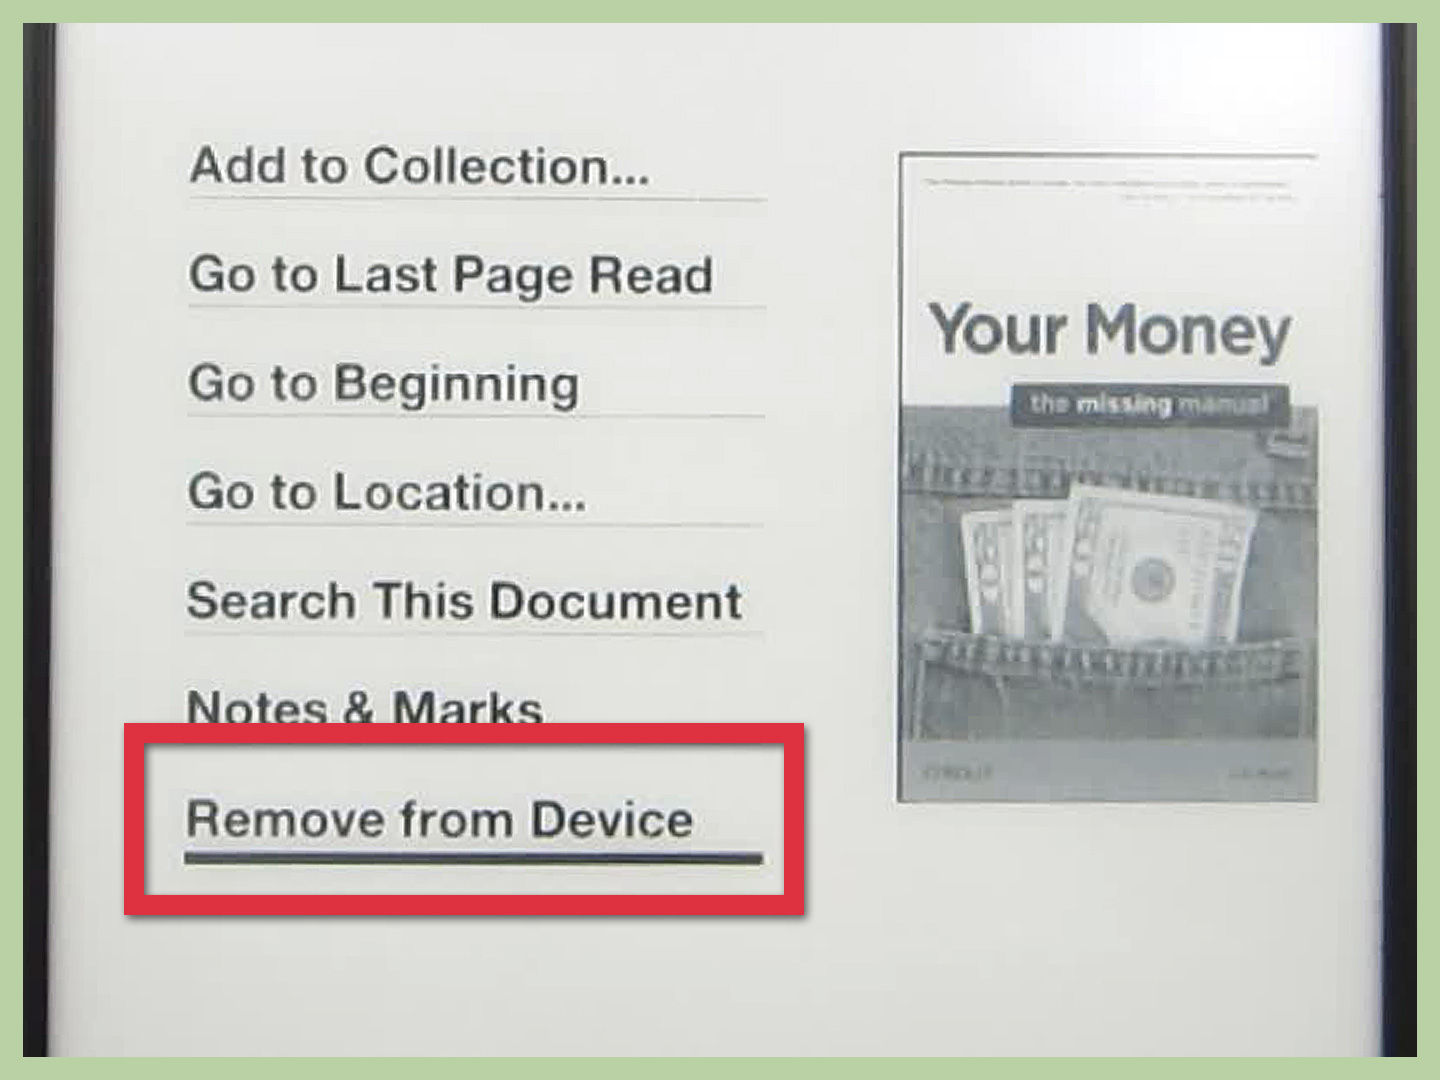 Barnes & Noble Nook Tablet Delete Books From Kindle